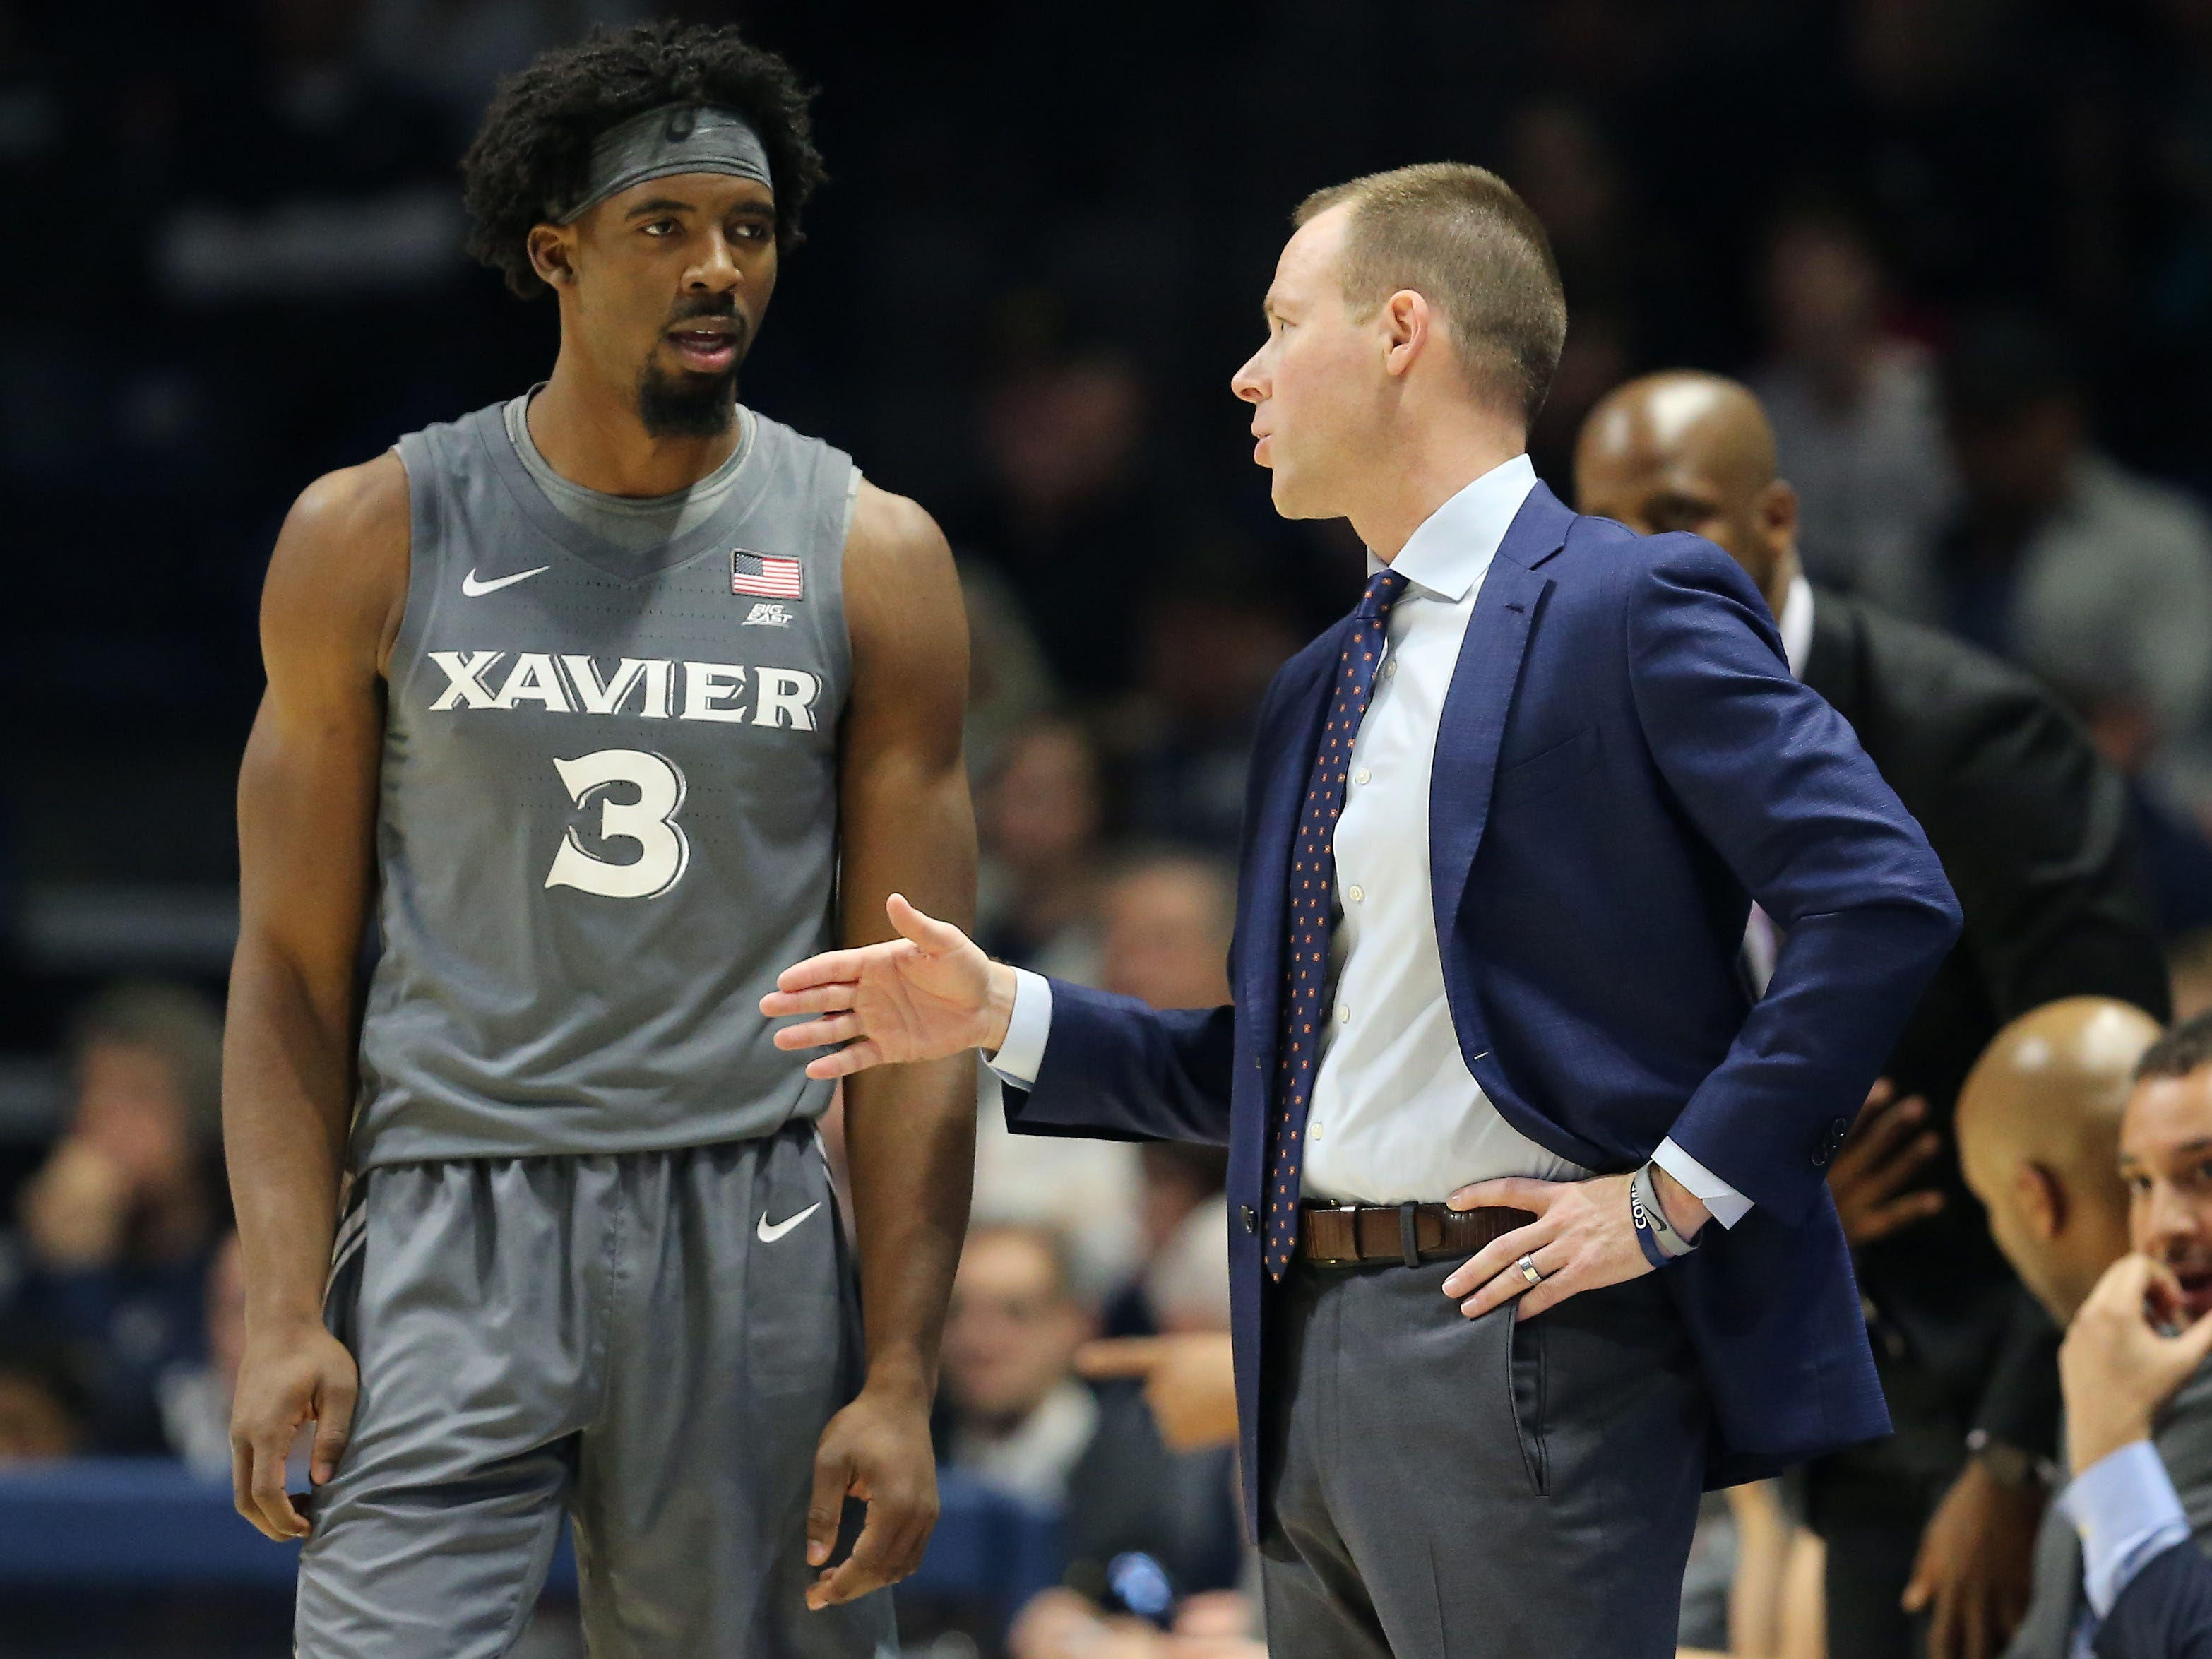 Xavier Musketeers head coach Travis Steele, right, talks with Xavier Musketeers guard Quentin Goodin (3) in the first half of an NCAA college basketball game, Saturday, Dec. 15, 2018, at Cintas Center in Cincinnati, Ohio